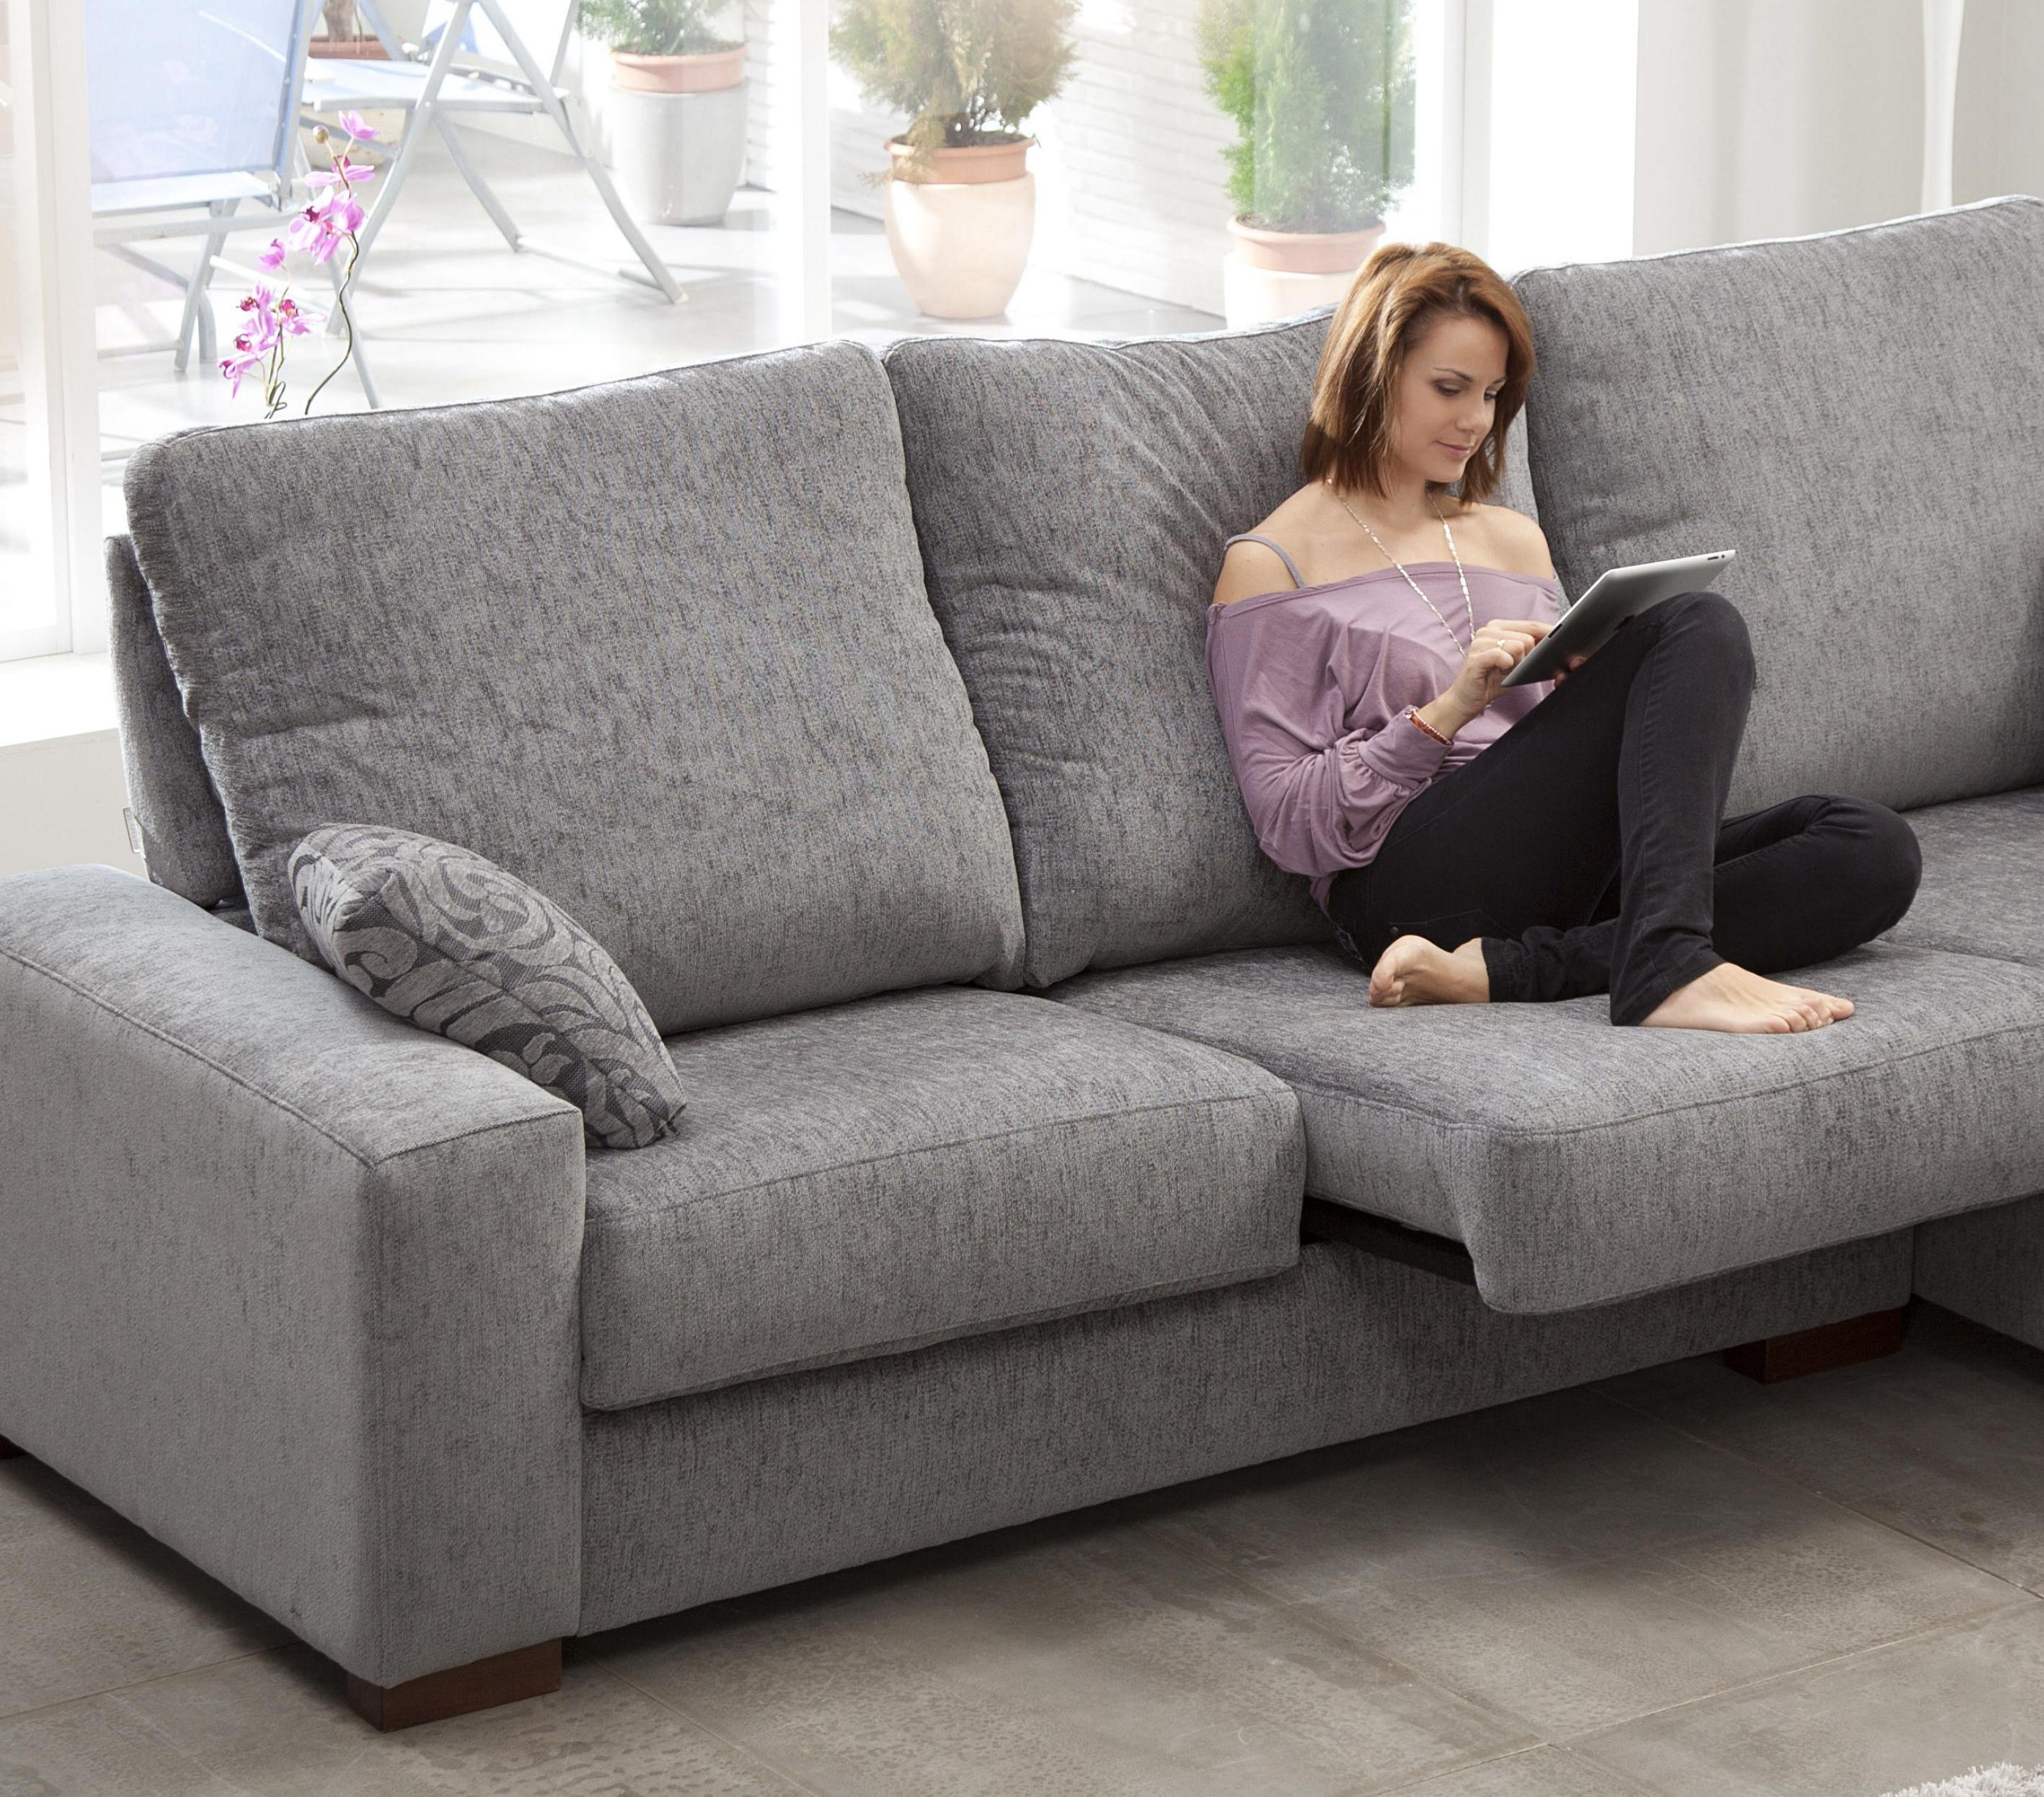 sofa fama chiselongue Mercado del Mueble Vivarea Pinto